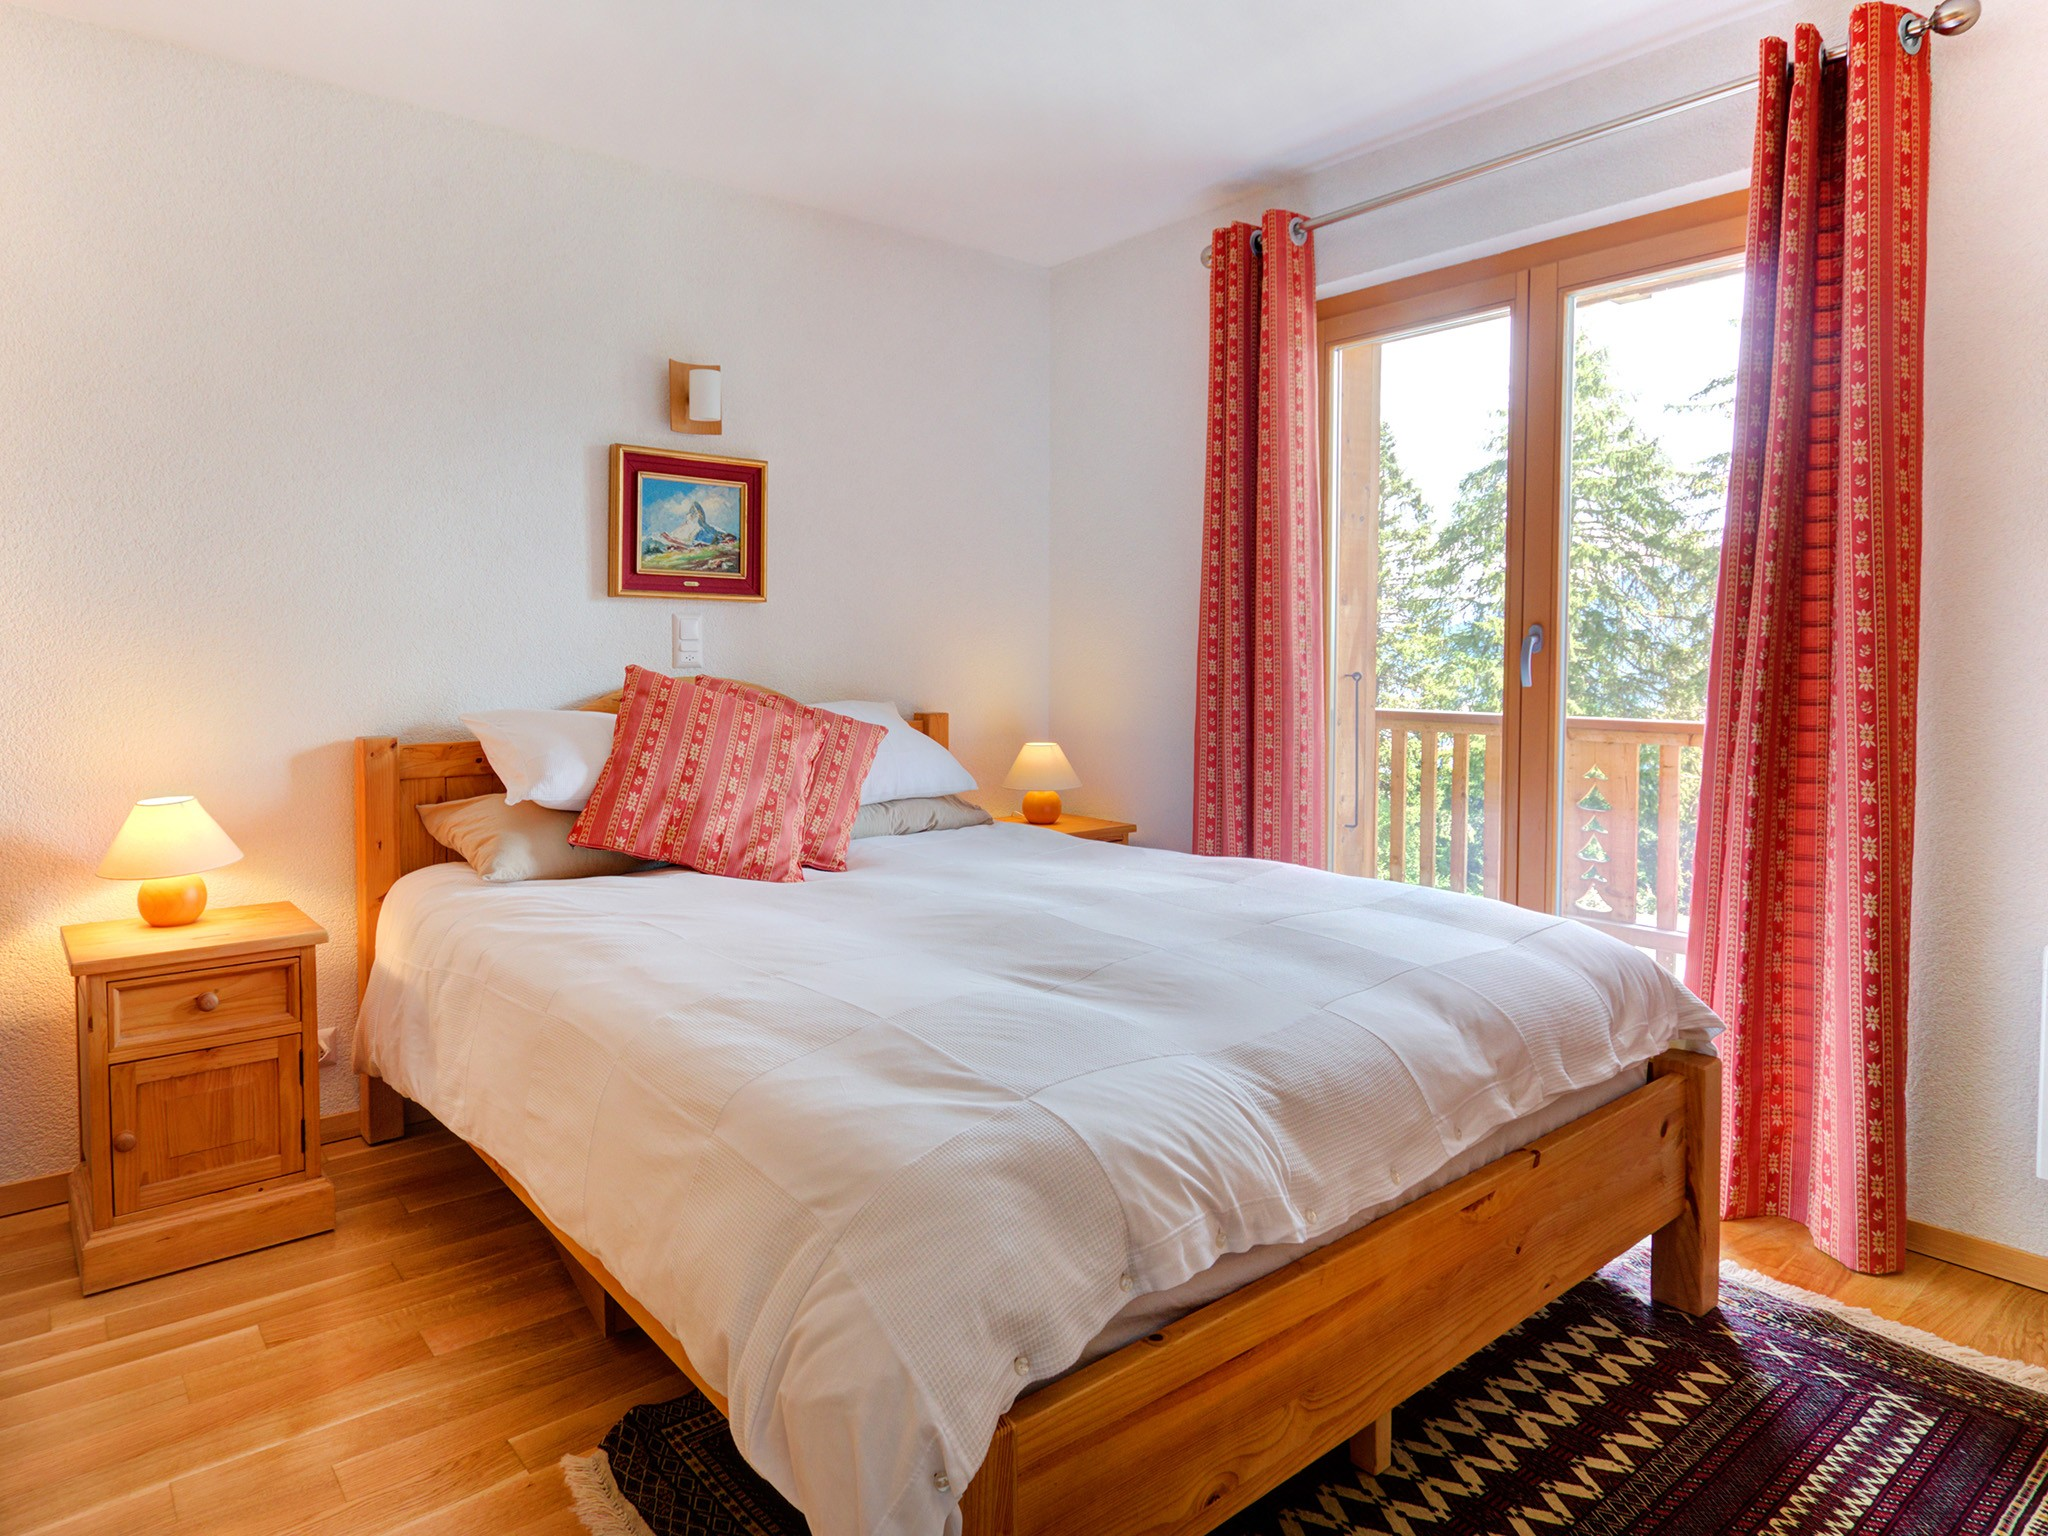 Chalet Collons 1850 - bedroom